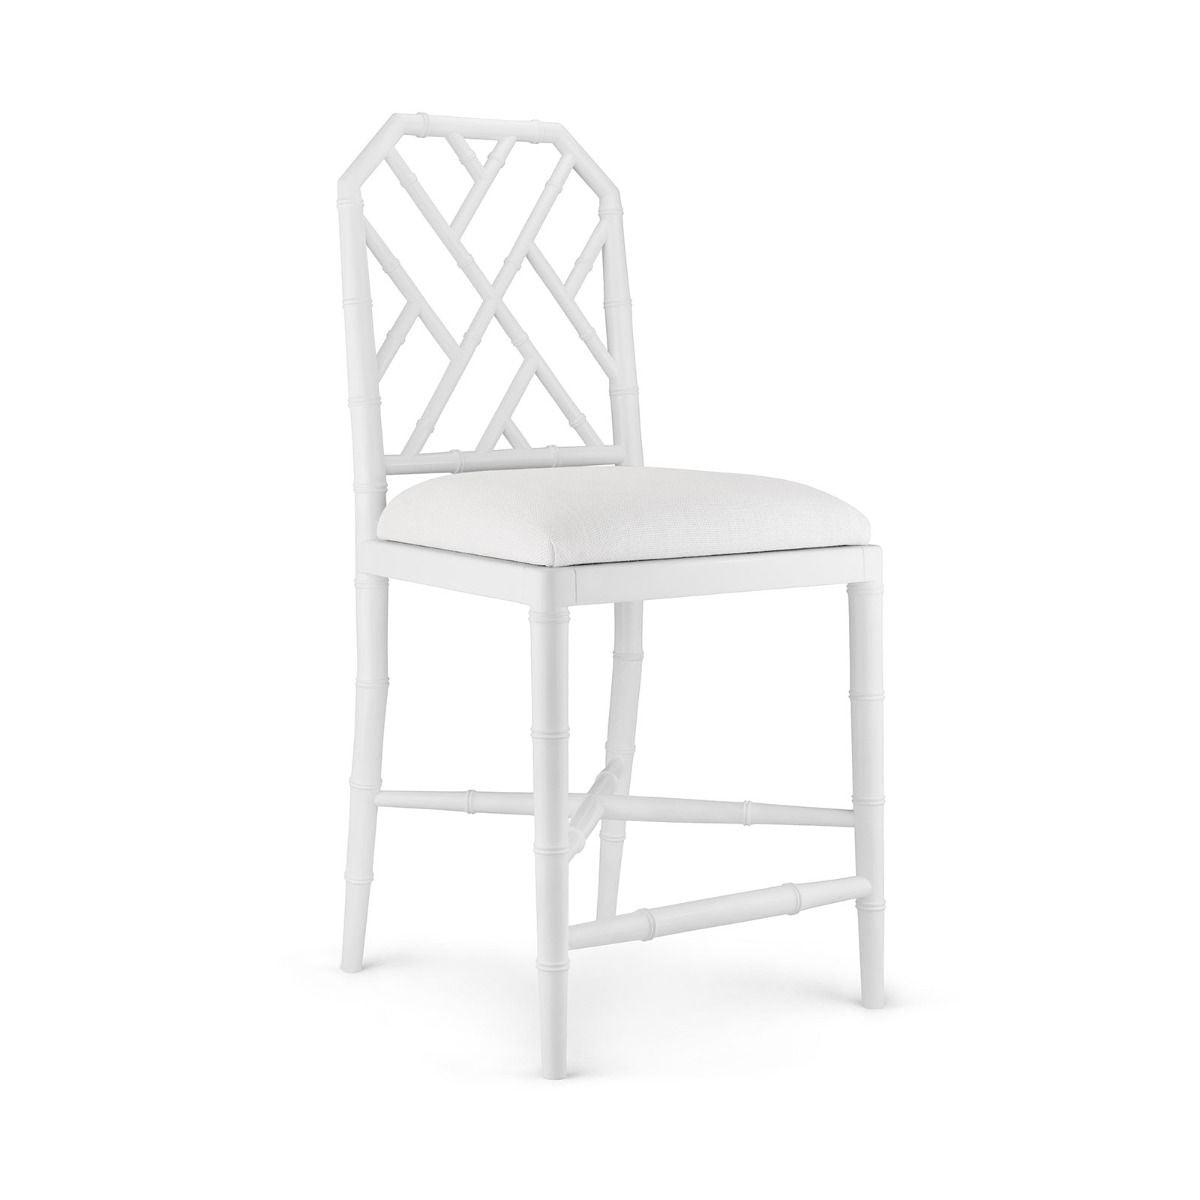 Bungalow 5 - JARDIN COUNTER STOOL, WHITE-Bungalow 5-Blue Hand Home